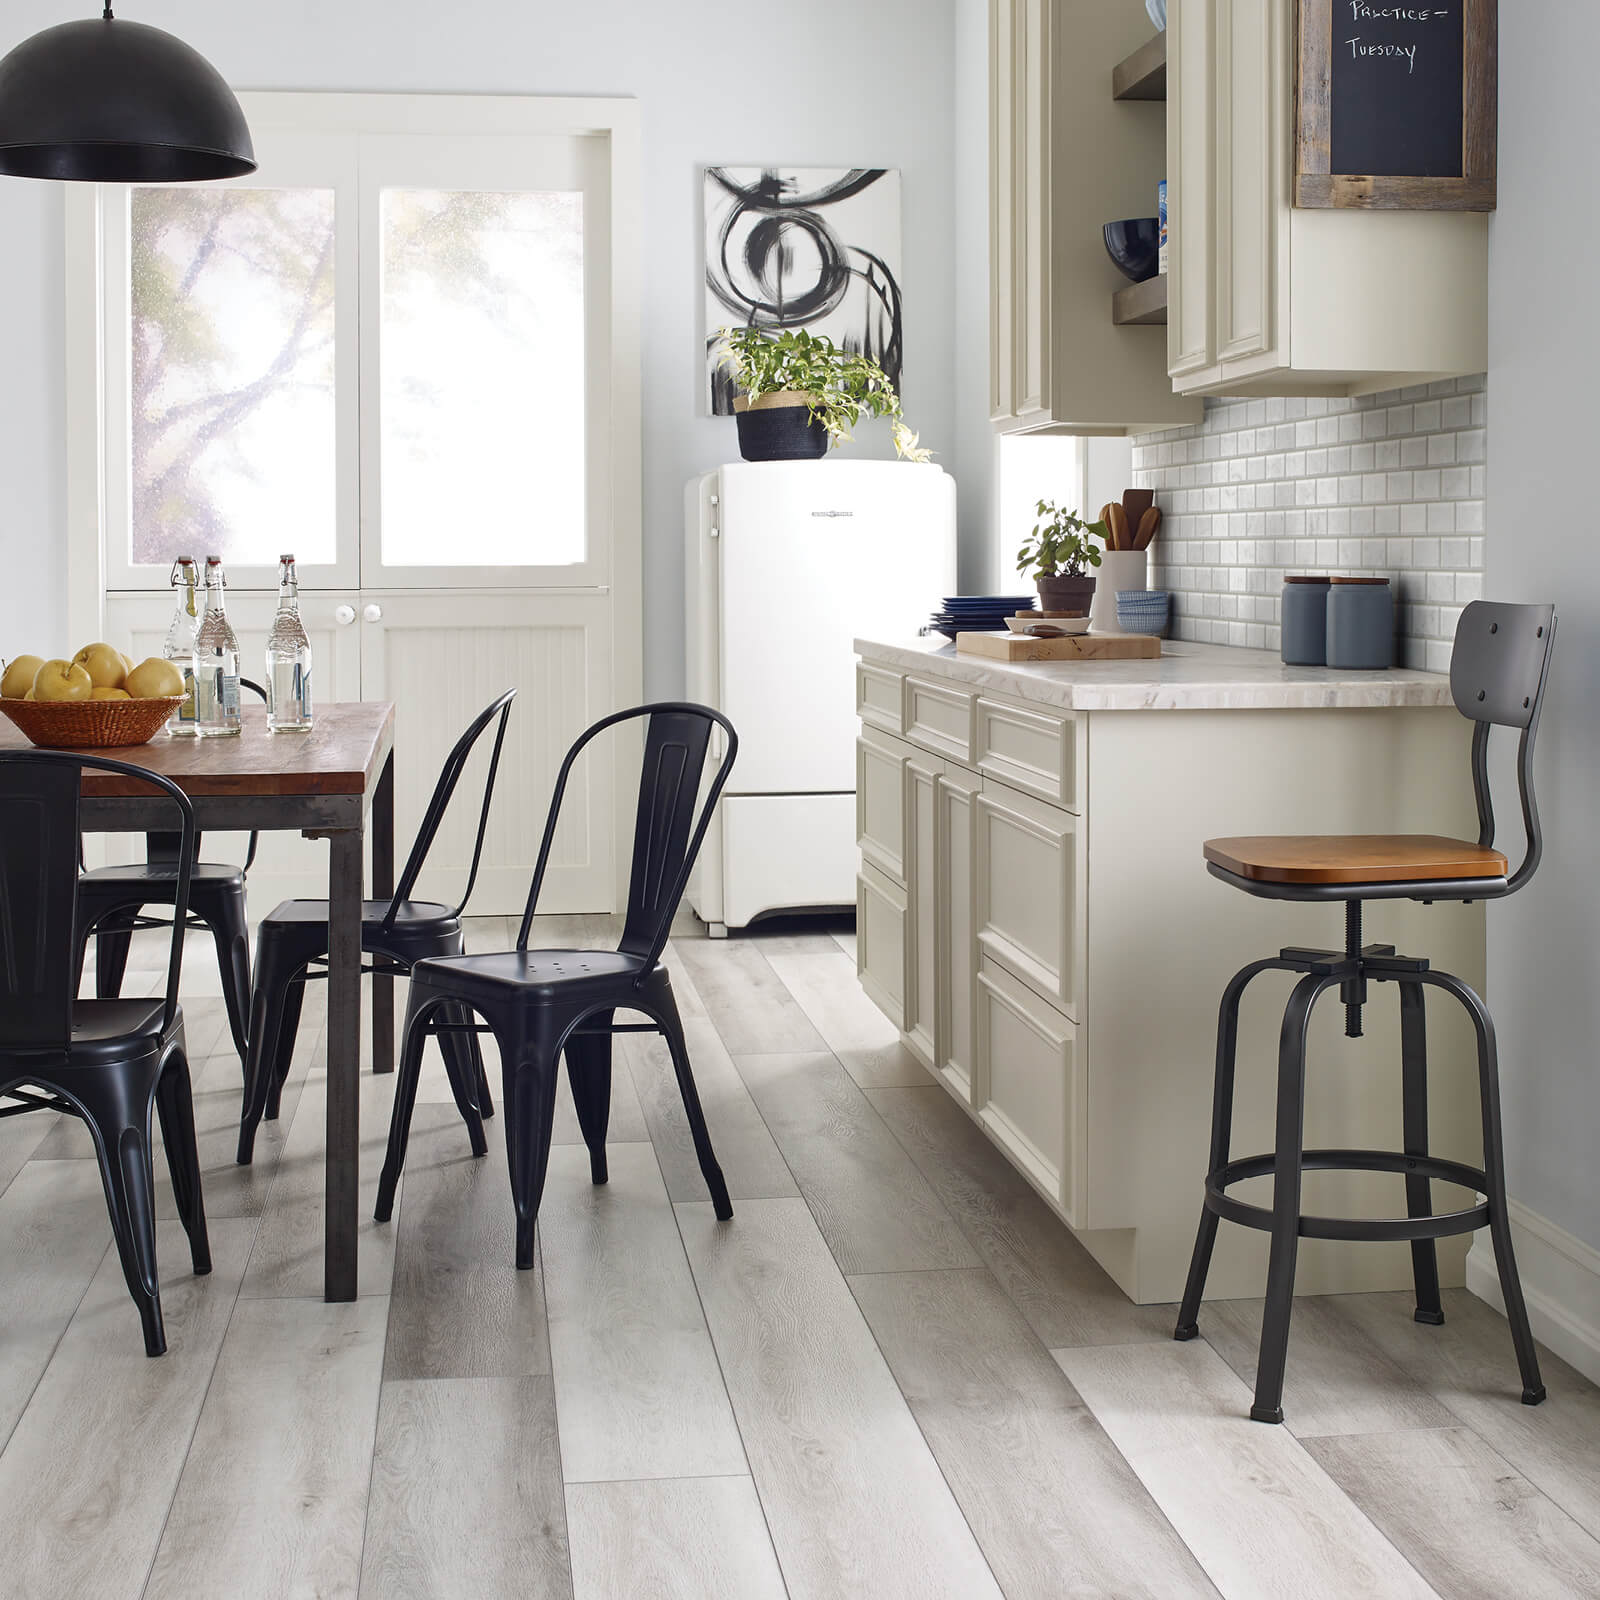 Farmhouse Kitchen | Wacky's Flooring